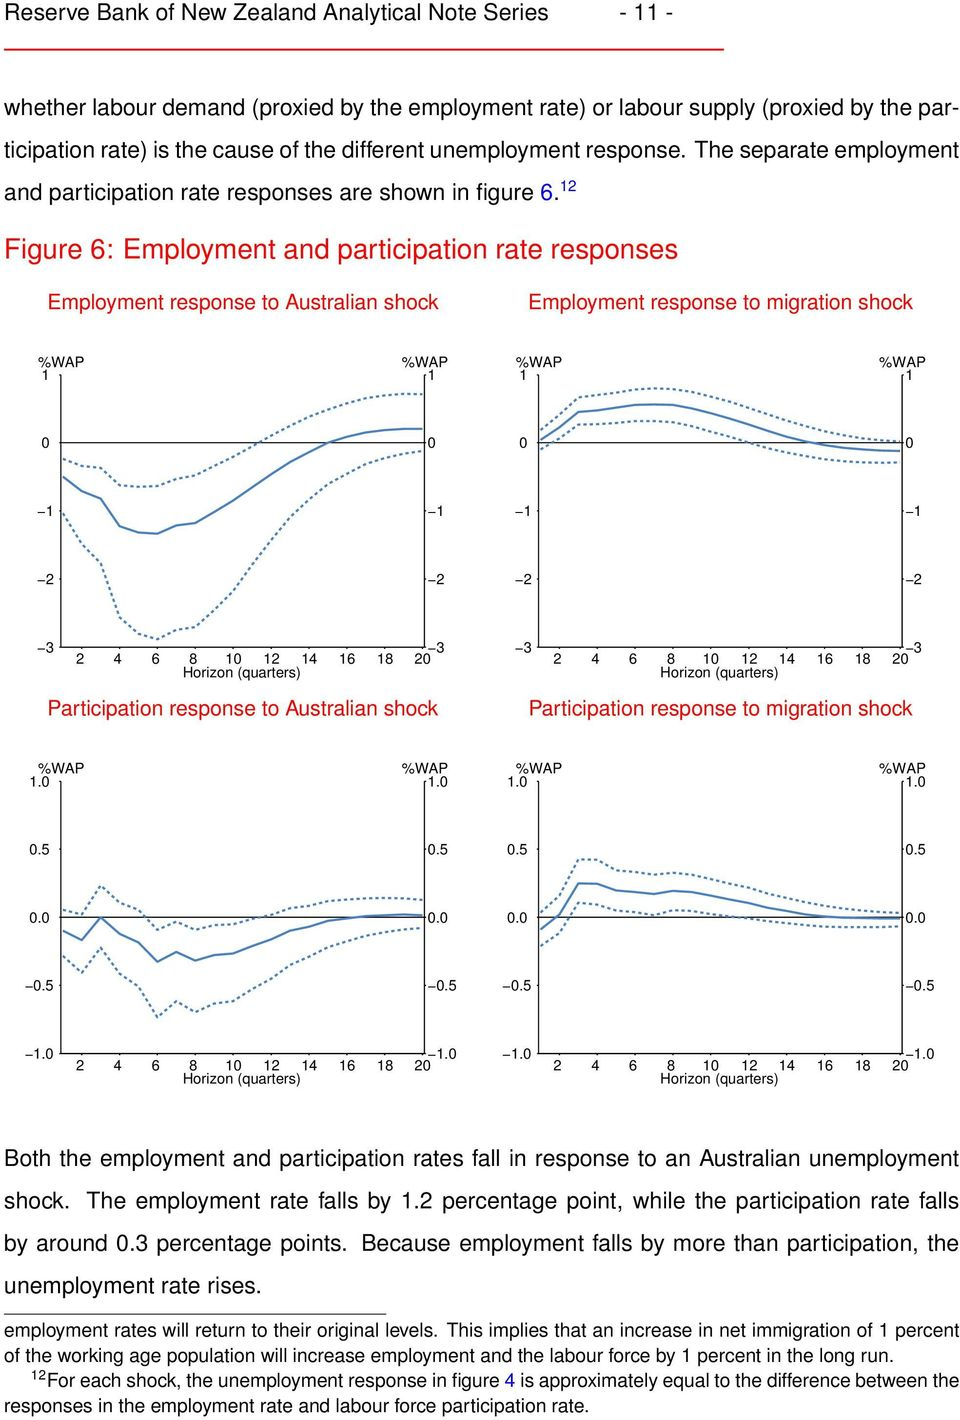 2 Figure 6: Employment and participation rate responses Employment response to Australian shock Employment response to migration shock 2 2 2 2 3 3 2 4 6 8 2 4 6 8 2 3 3 2 4 6 8 2 4 6 8 2